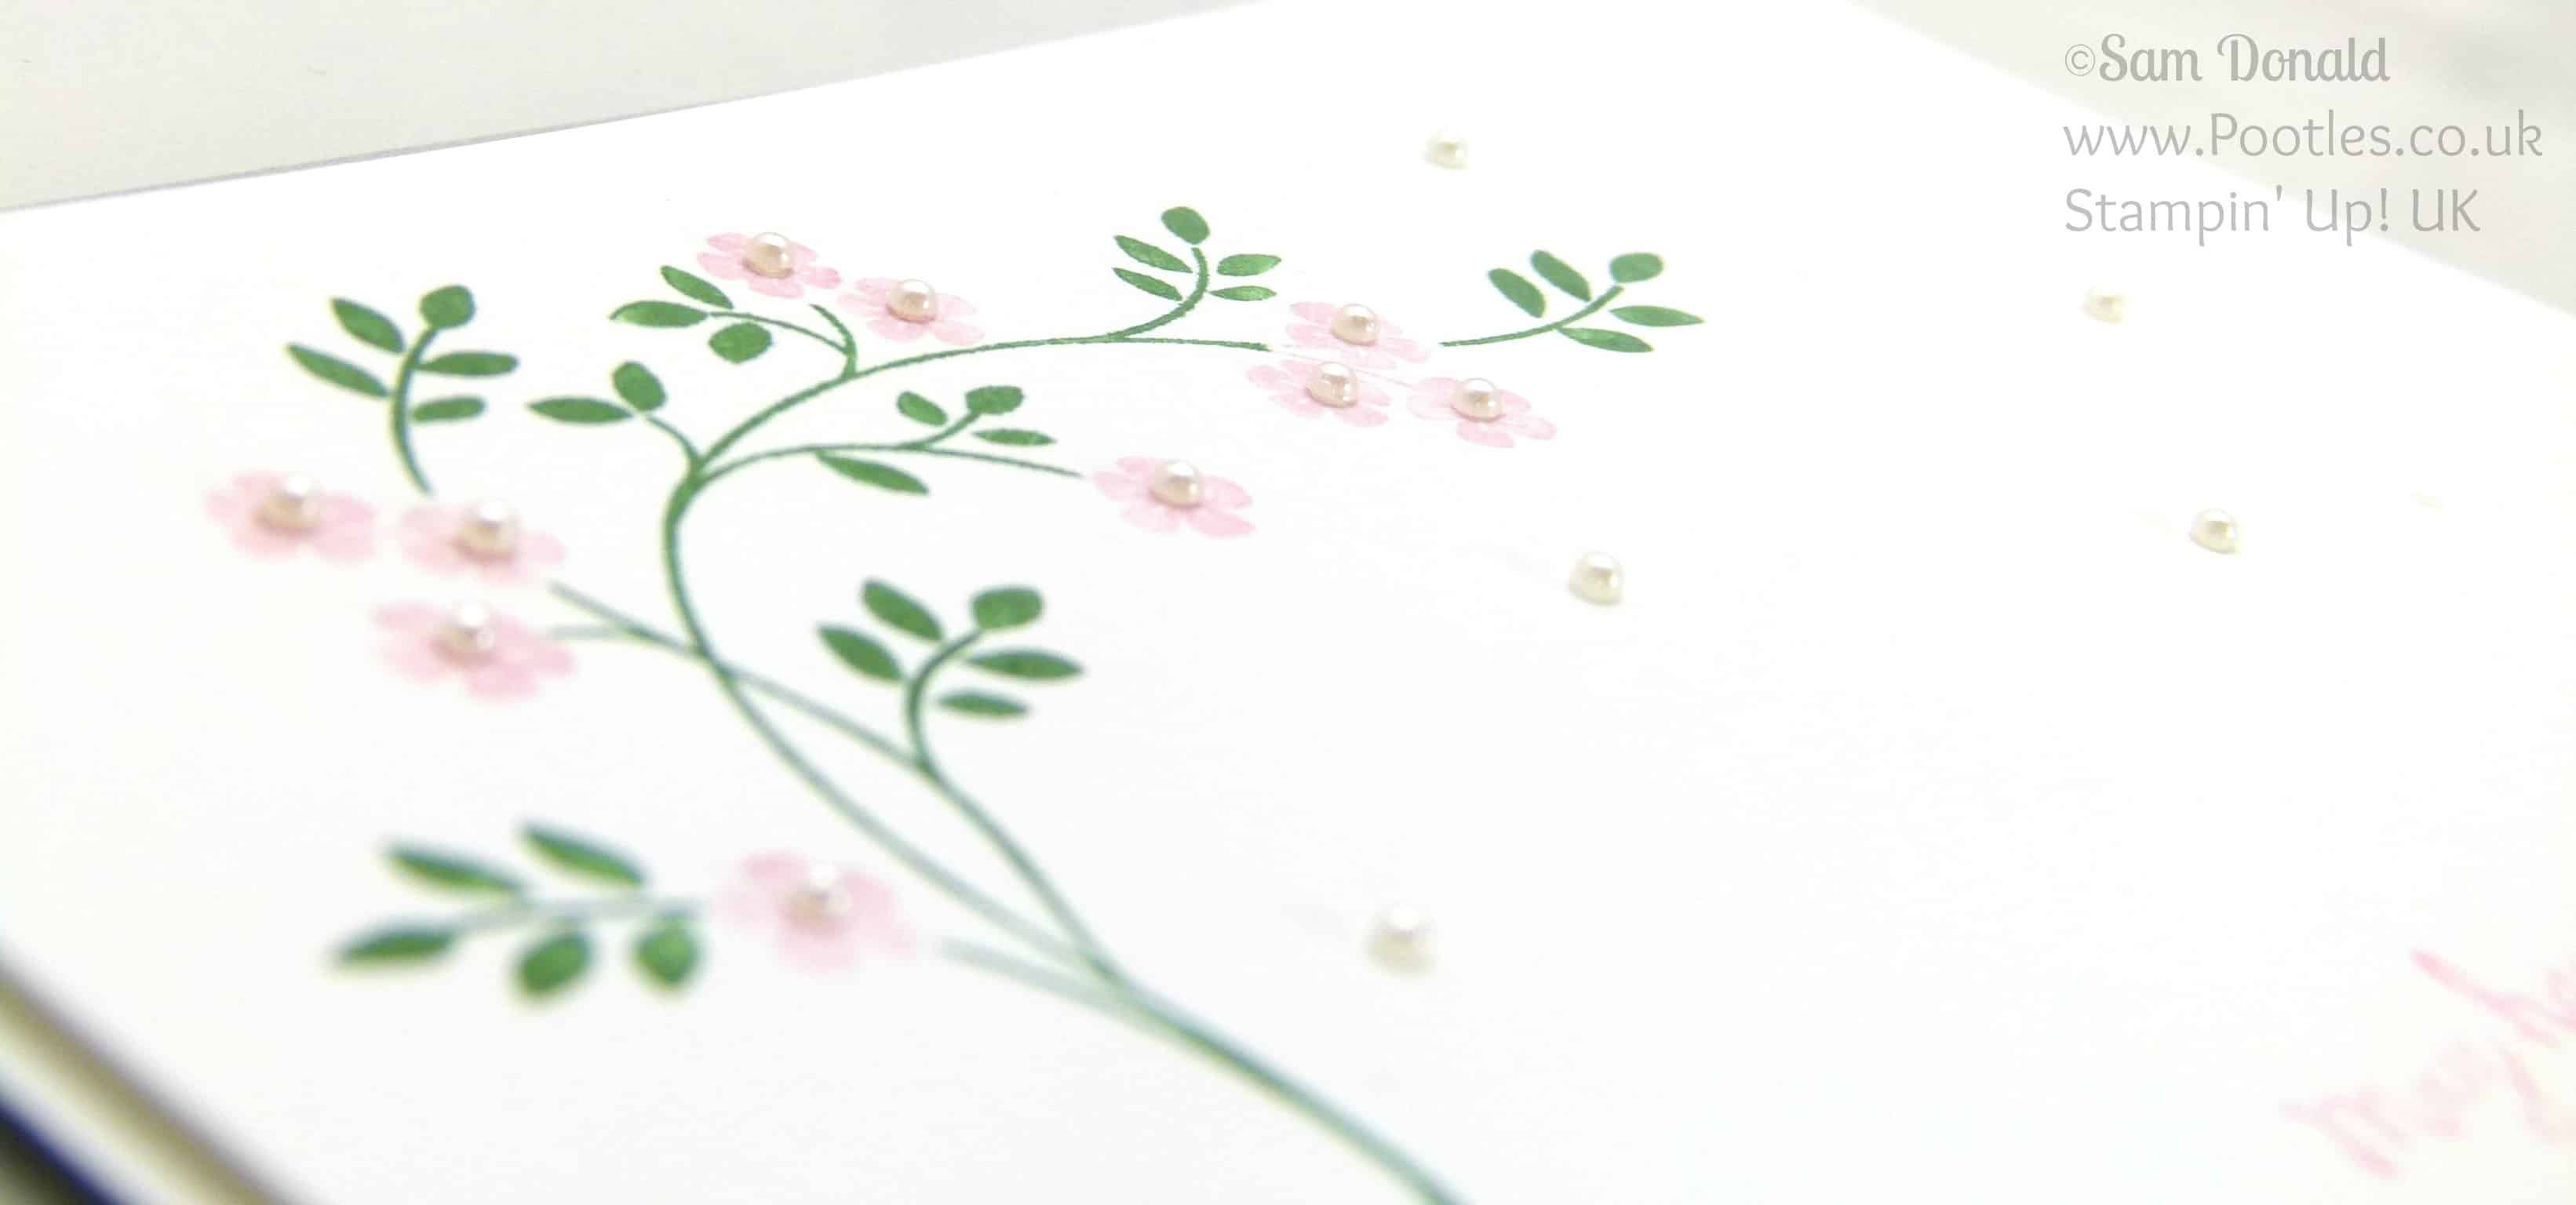 POOTLES Stampin' Up! UK Hopeful Thoughts of Spring in the Air Close Up